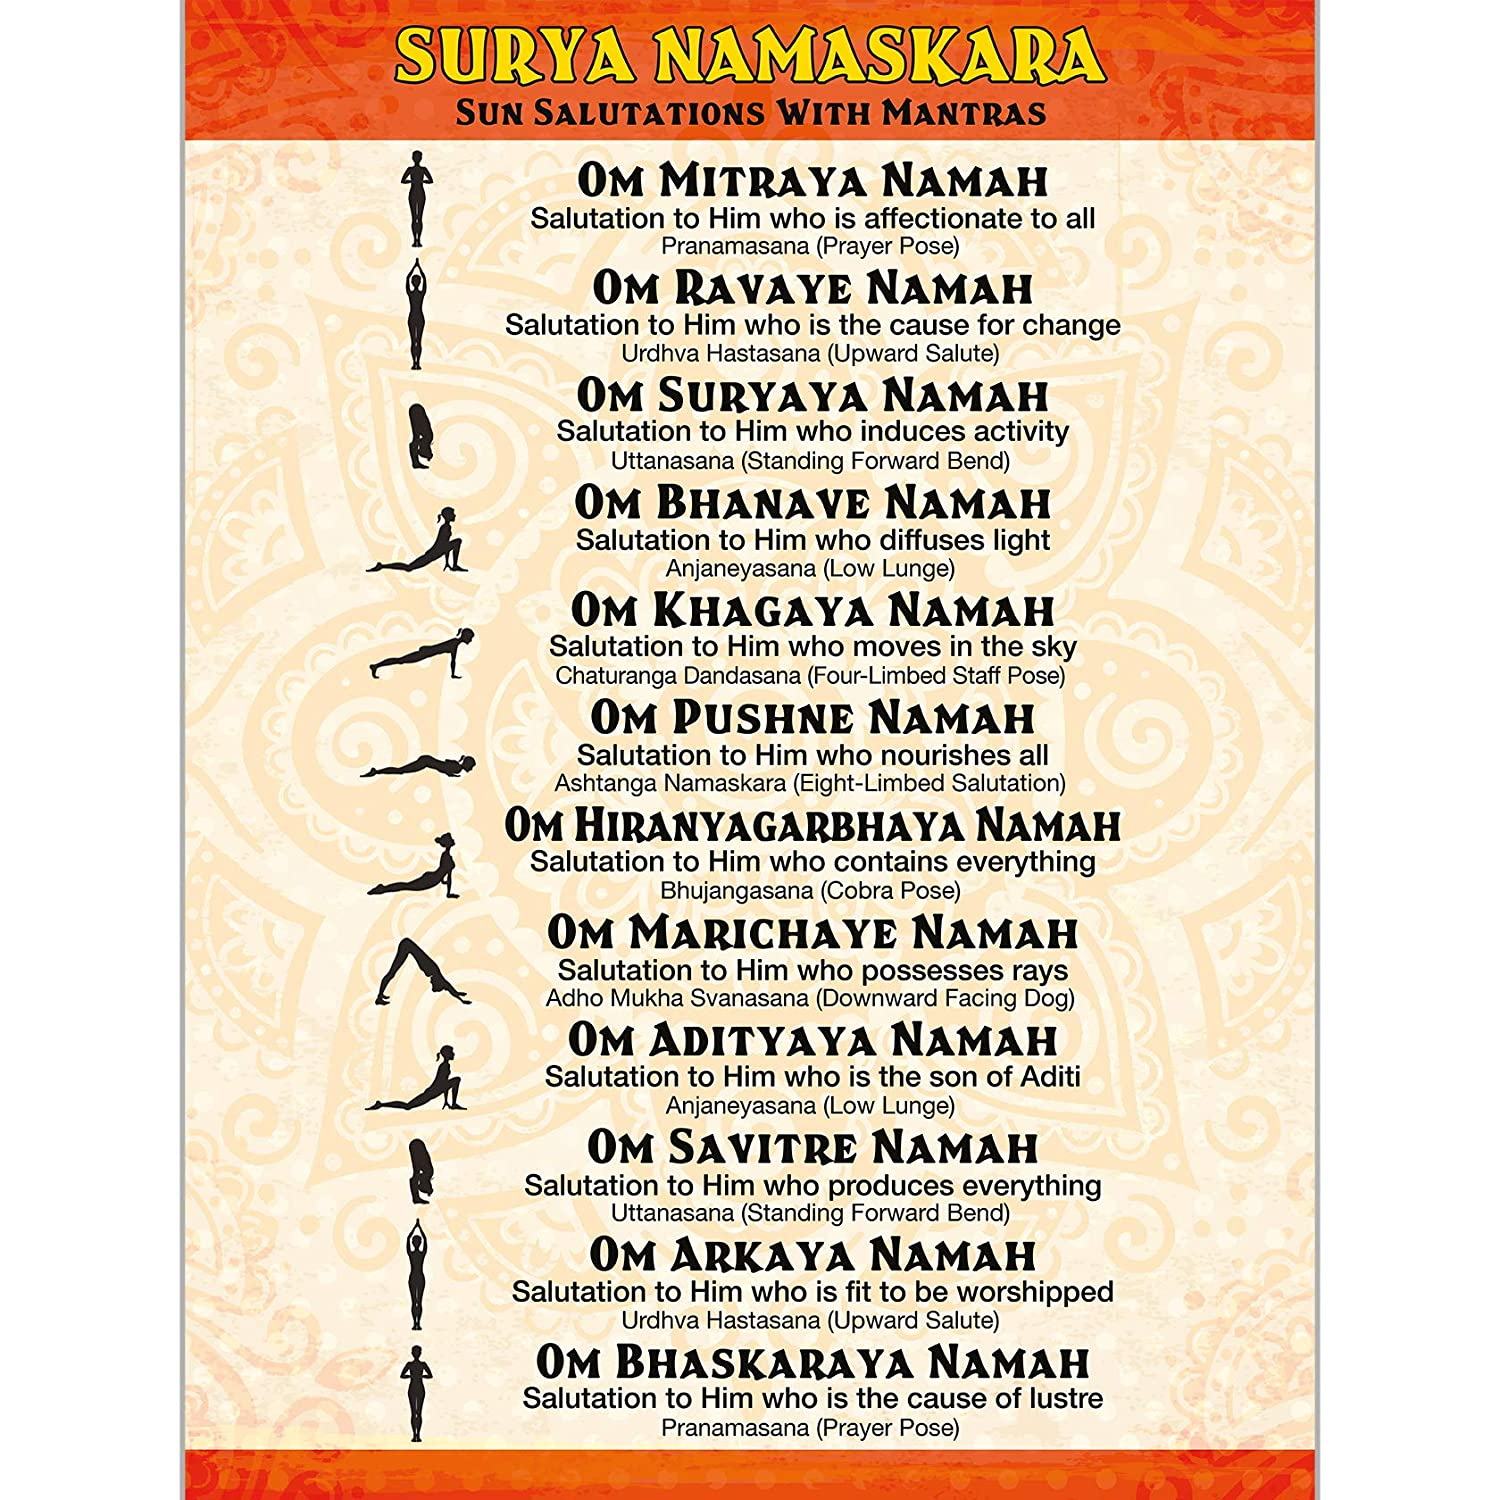 Amazon.com: The Mindful Word Surya Namaskara Yoga Poster ...